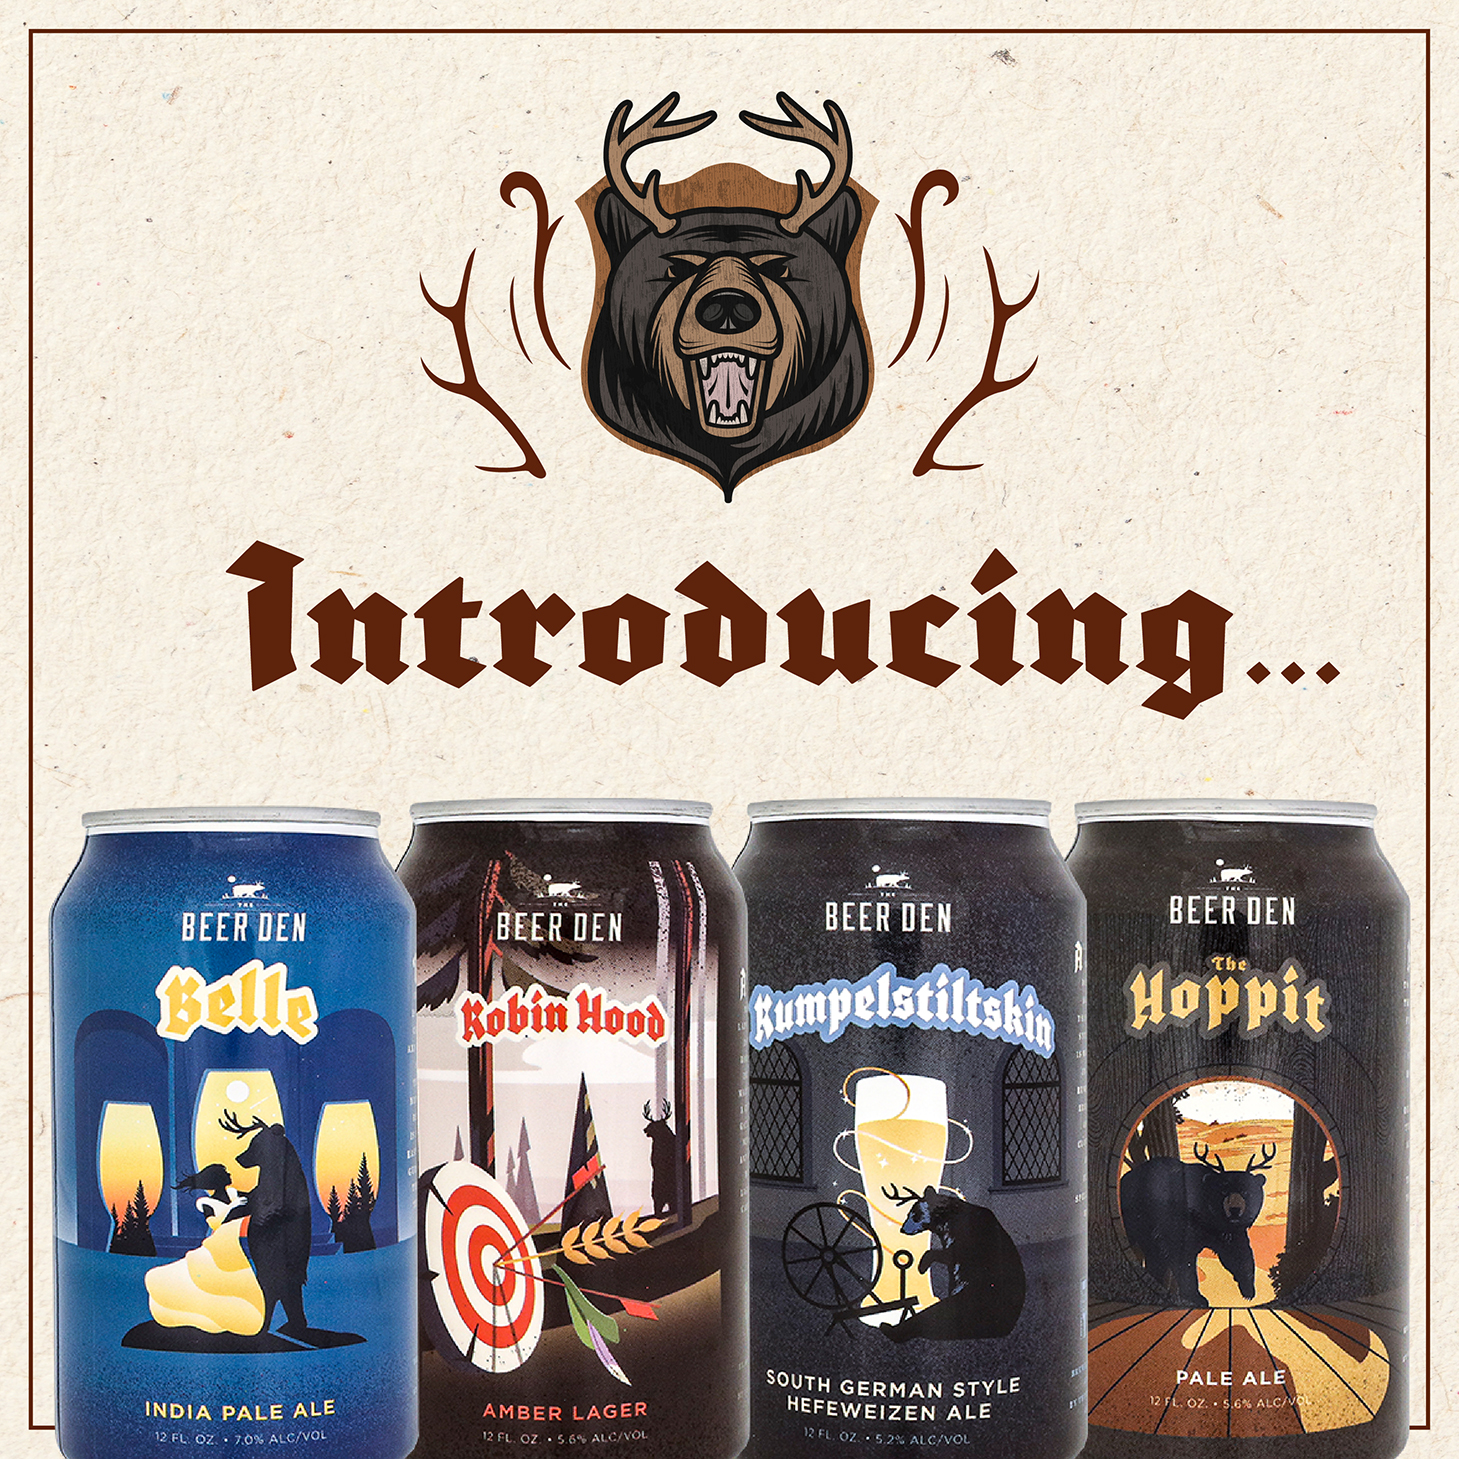 EZ_15143_The Beer Den Landing Page06